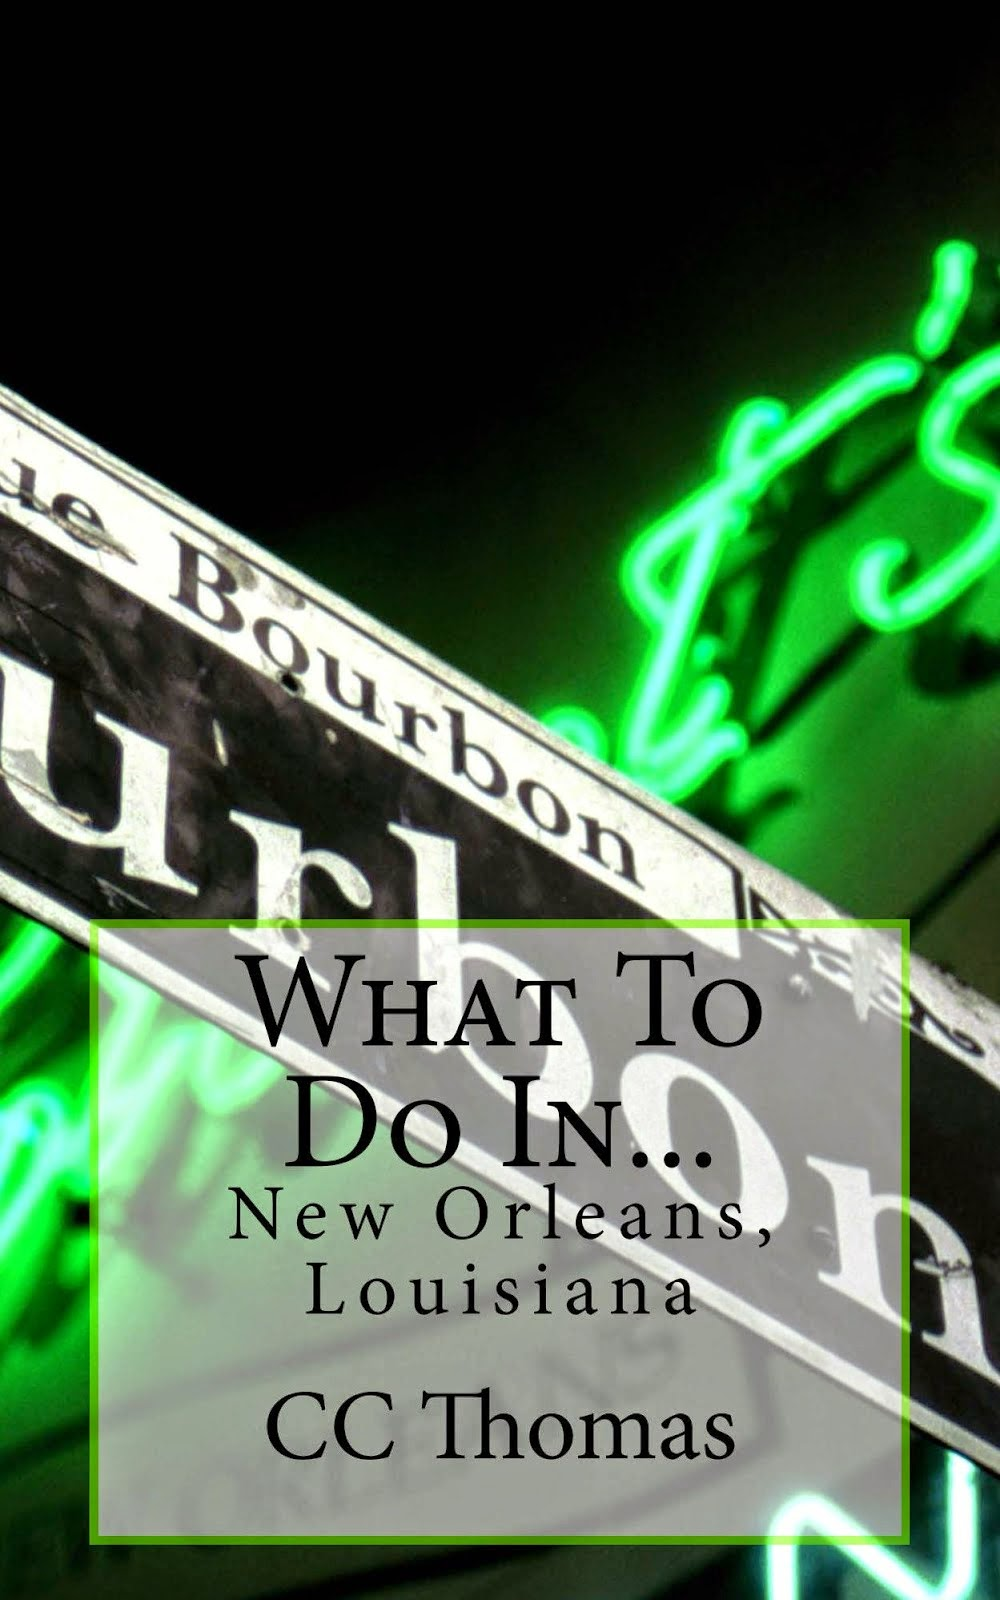 What To Do In...New Orleans, Louisiana